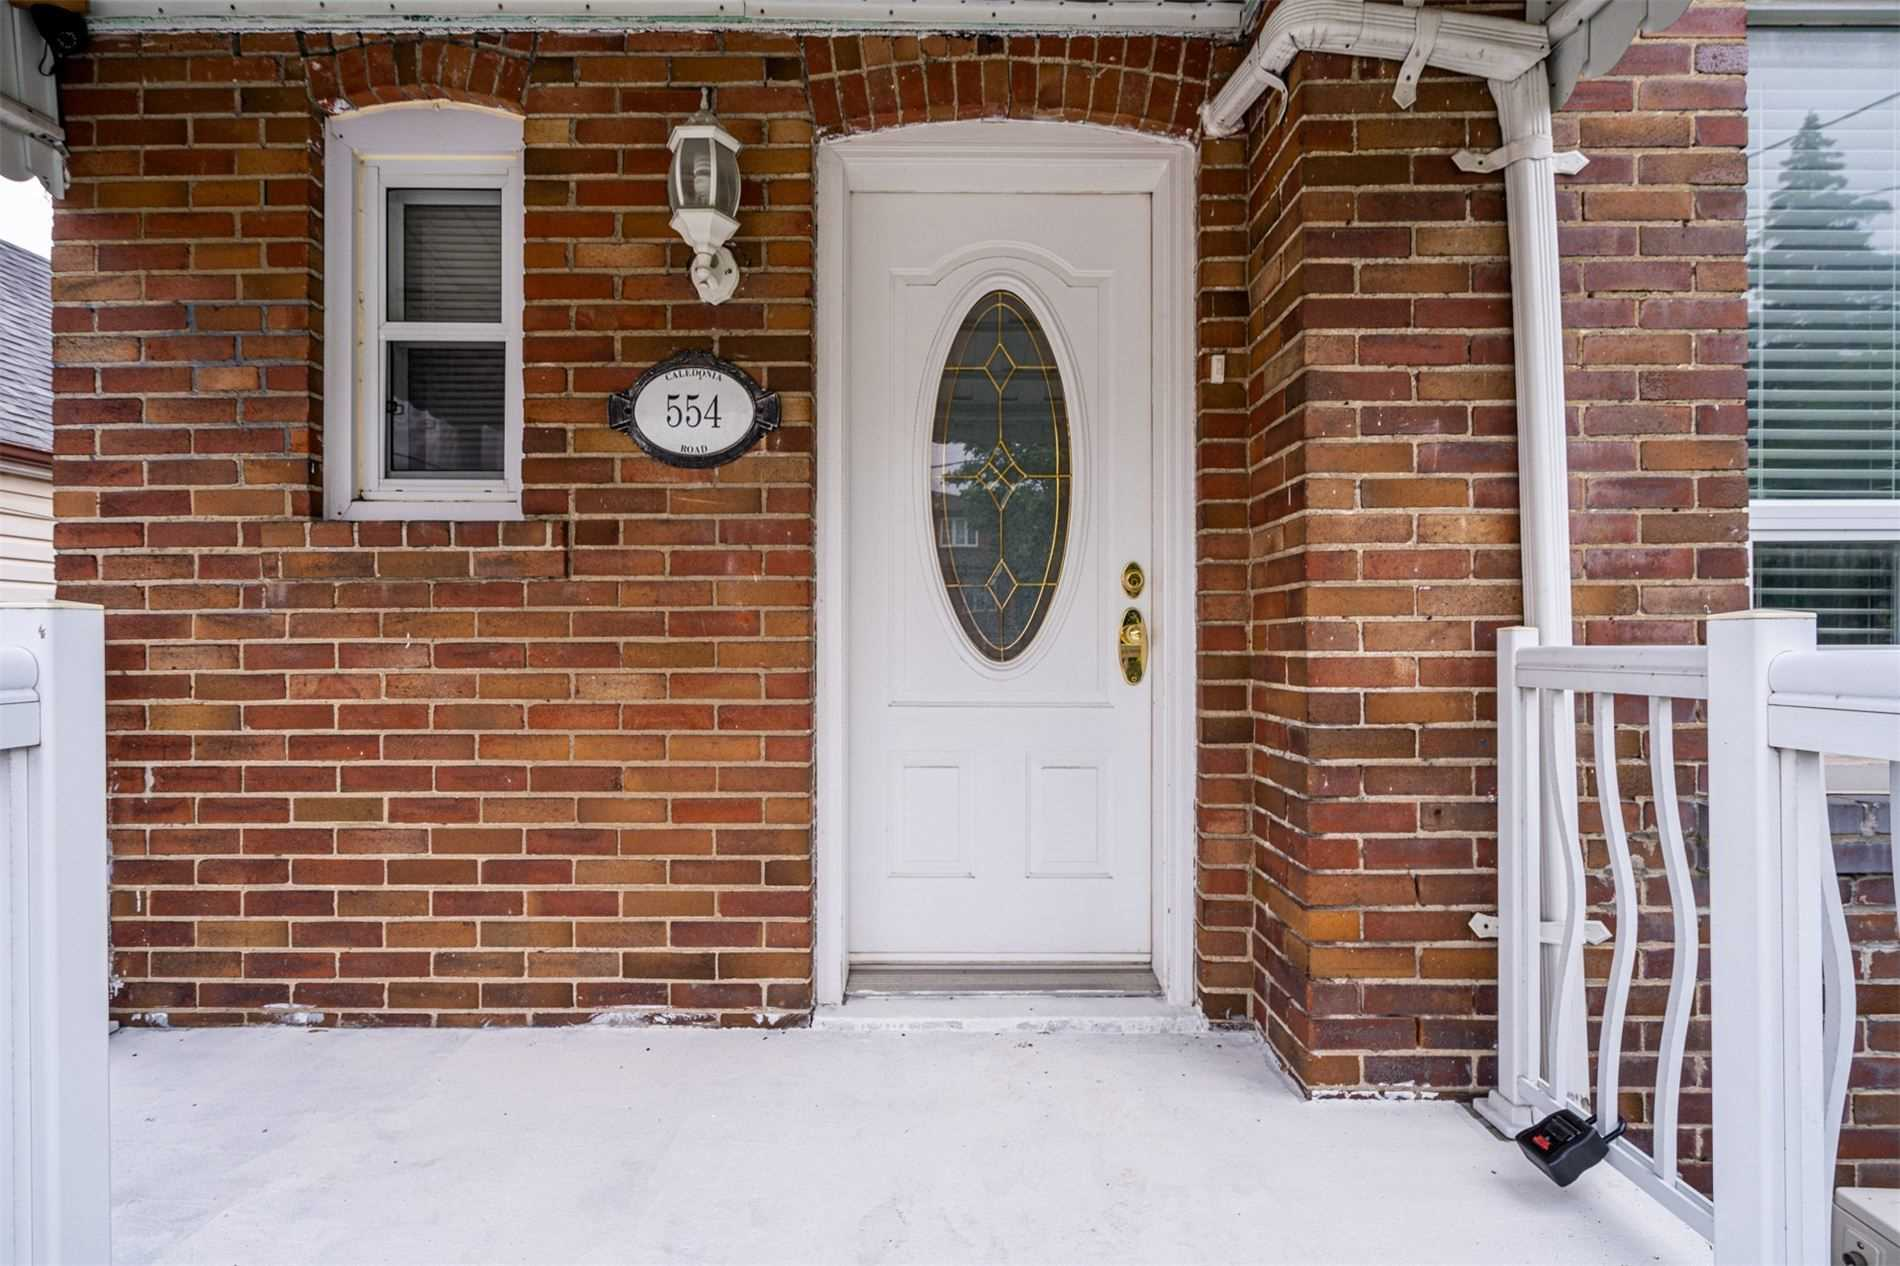 554 Caledonia Rd - Caledonia-Fairbank Detached for sale, 2 Bedrooms (W5305900) - #4